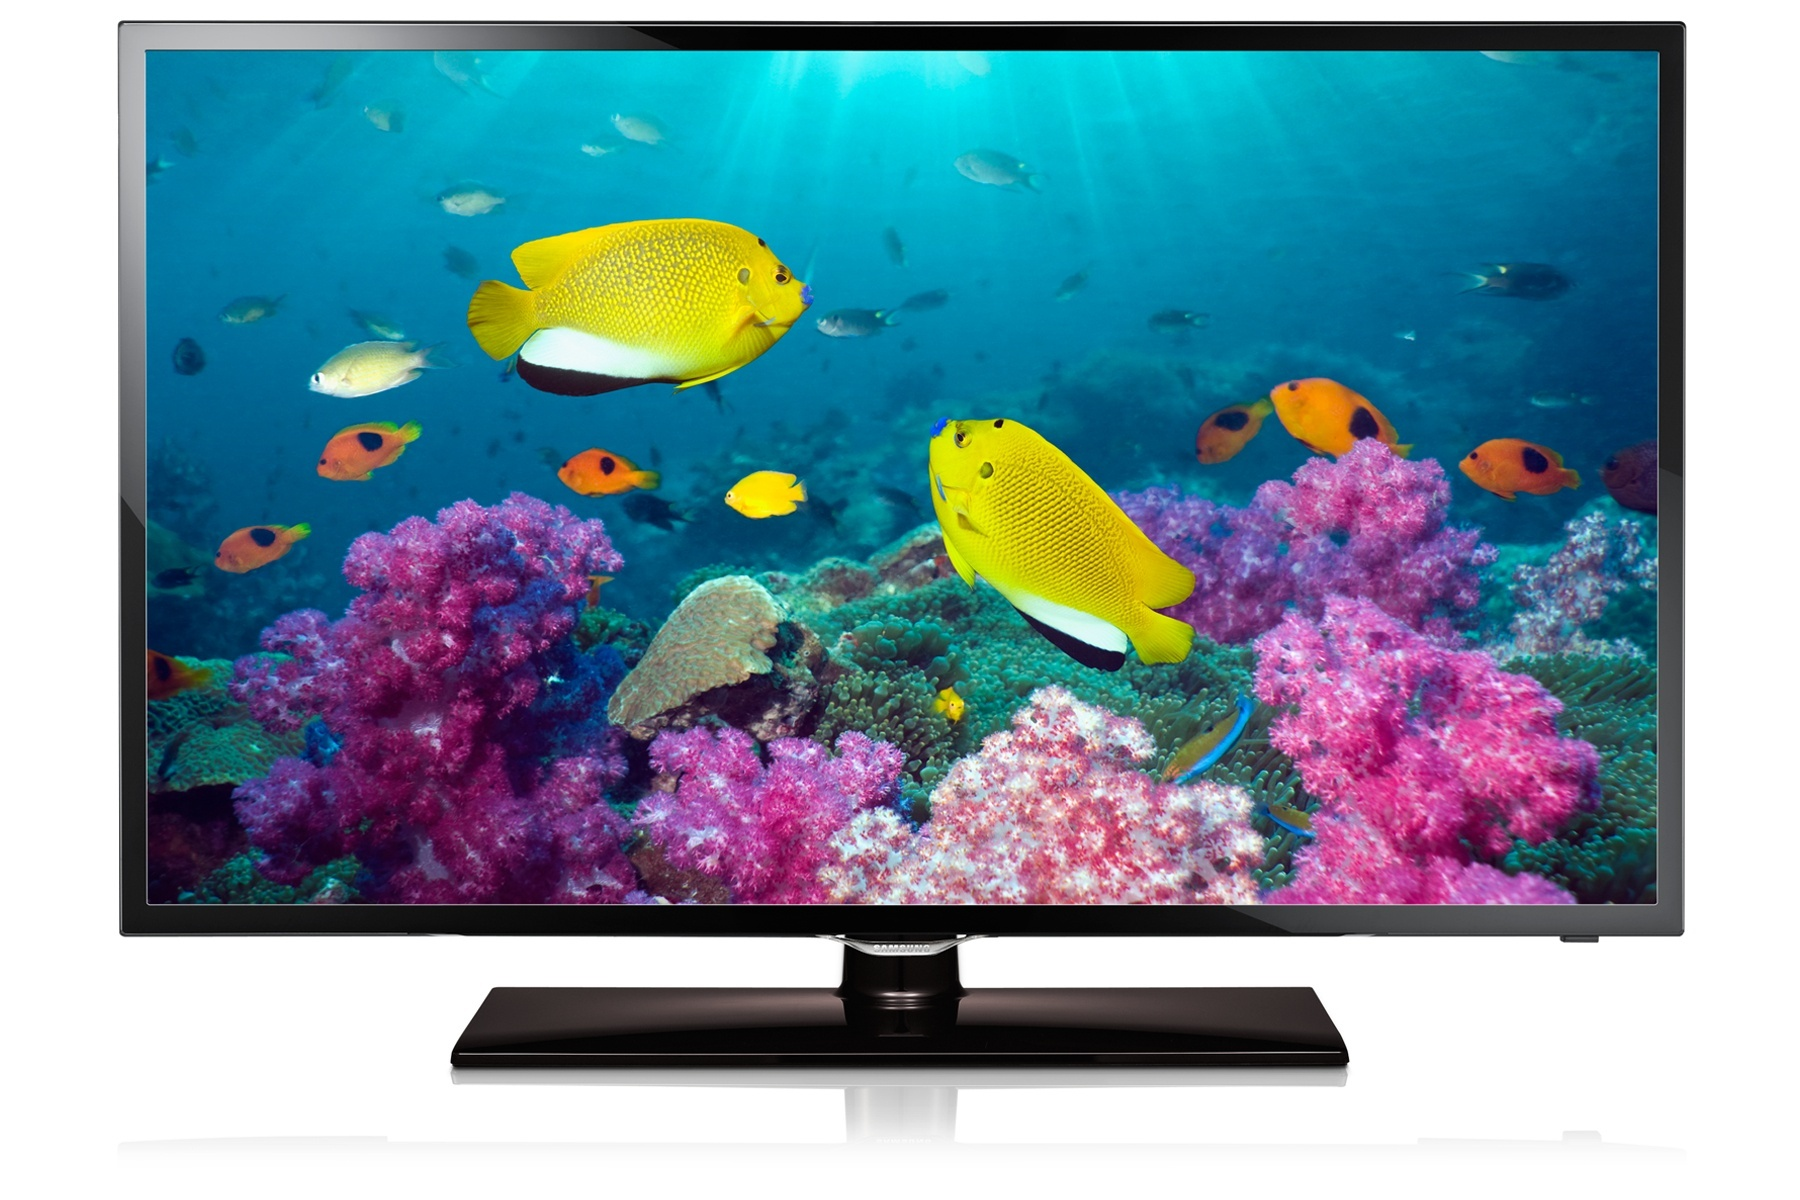 Led Online Shop What Is The Best Online Shopping Platform For The Best Led Tv In